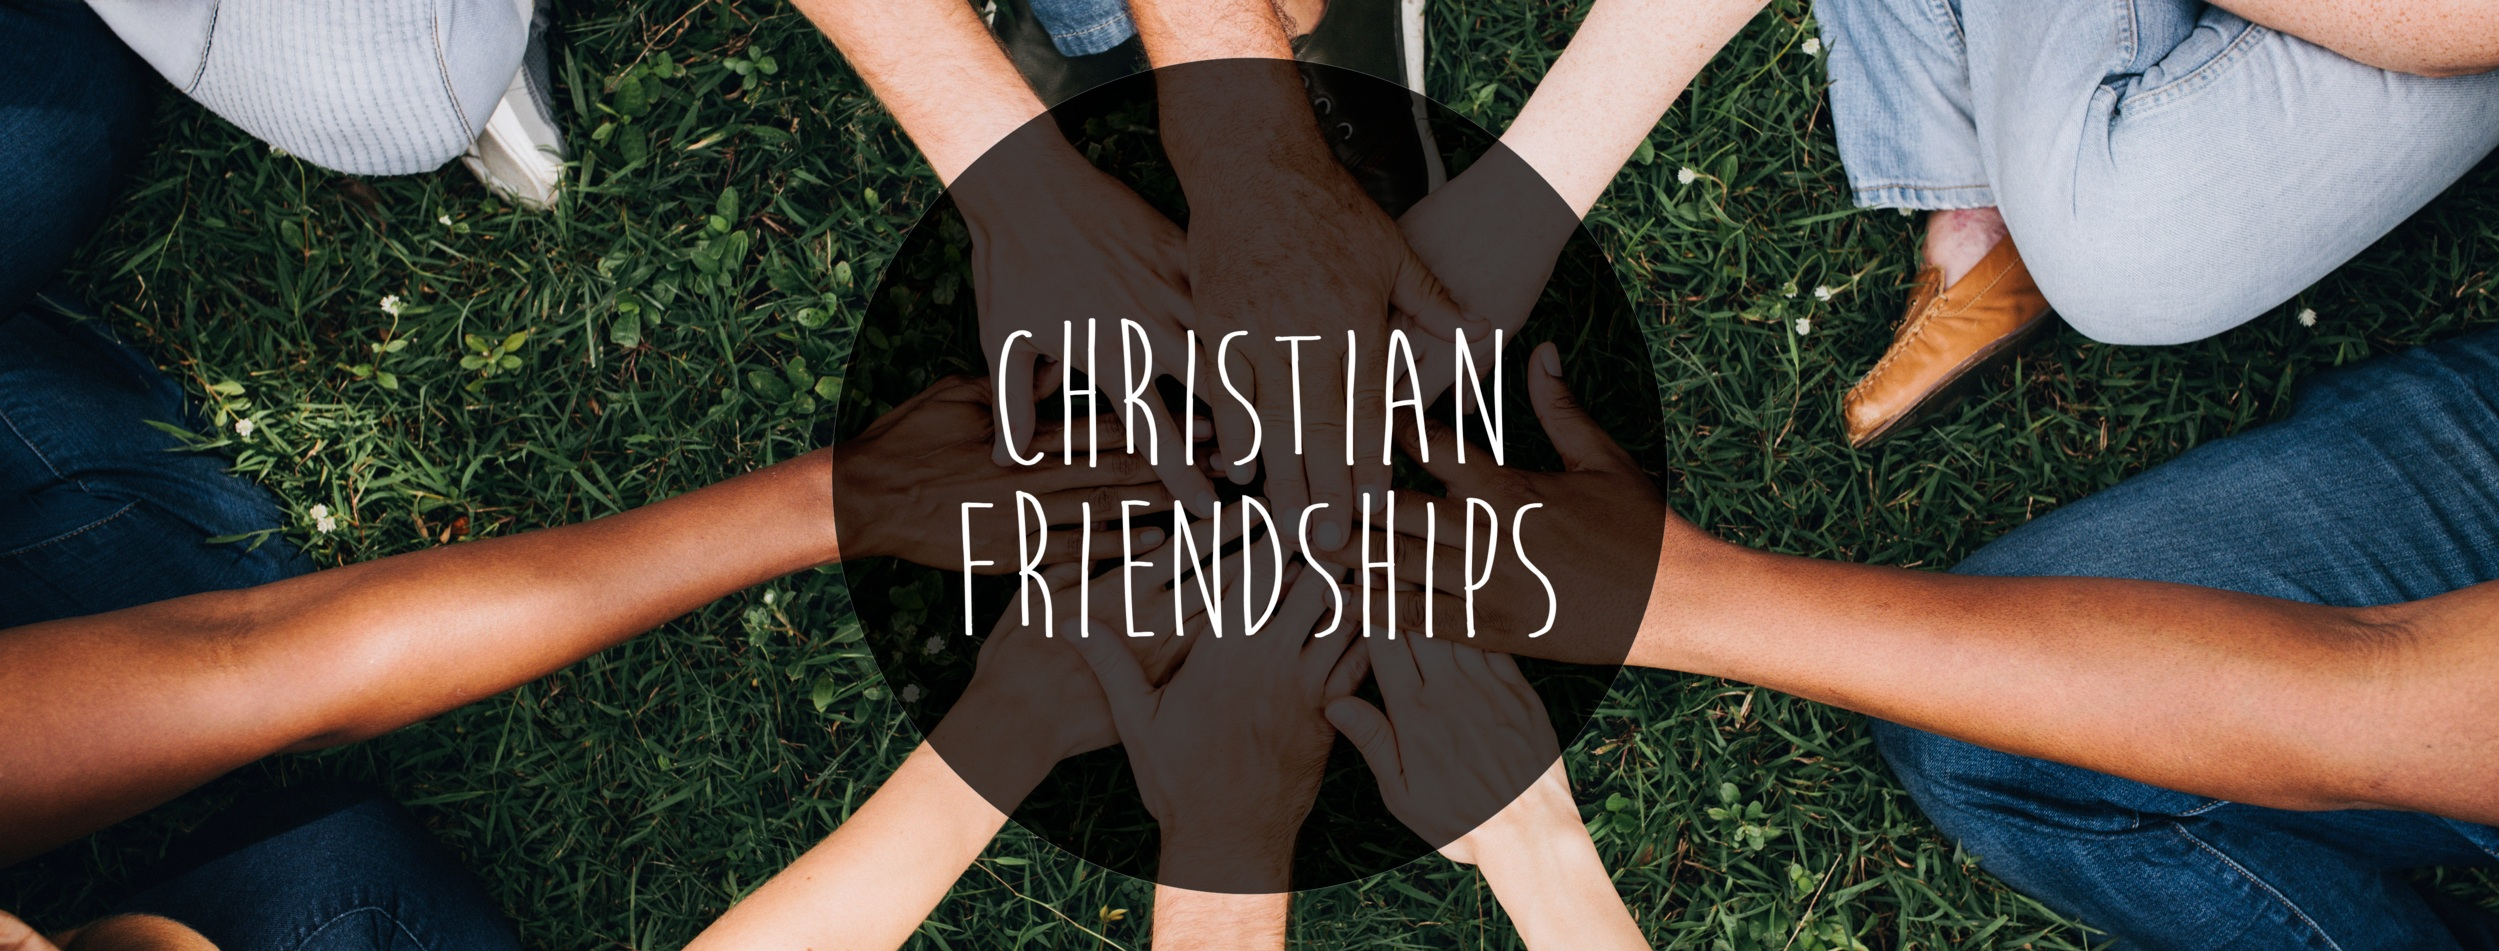 christian-friendships.jpg